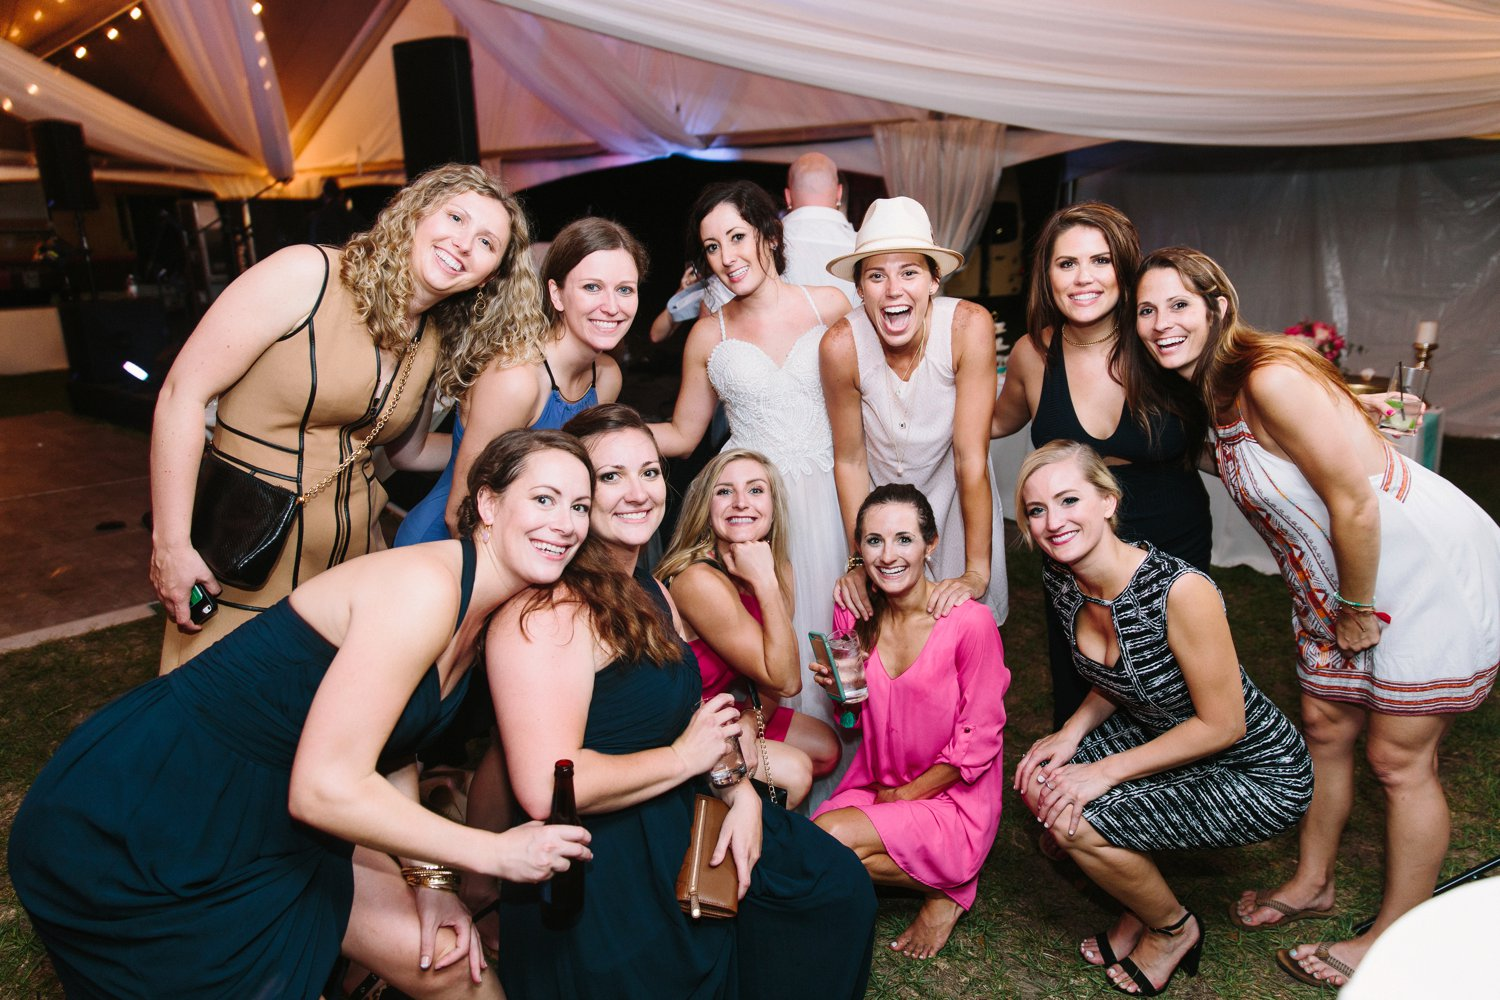 Lindsey_A_Miller_Photography_mcleod_plantation_wedding_charleston_south_carolina_clear_tent_spring_mod_events_099.jpg